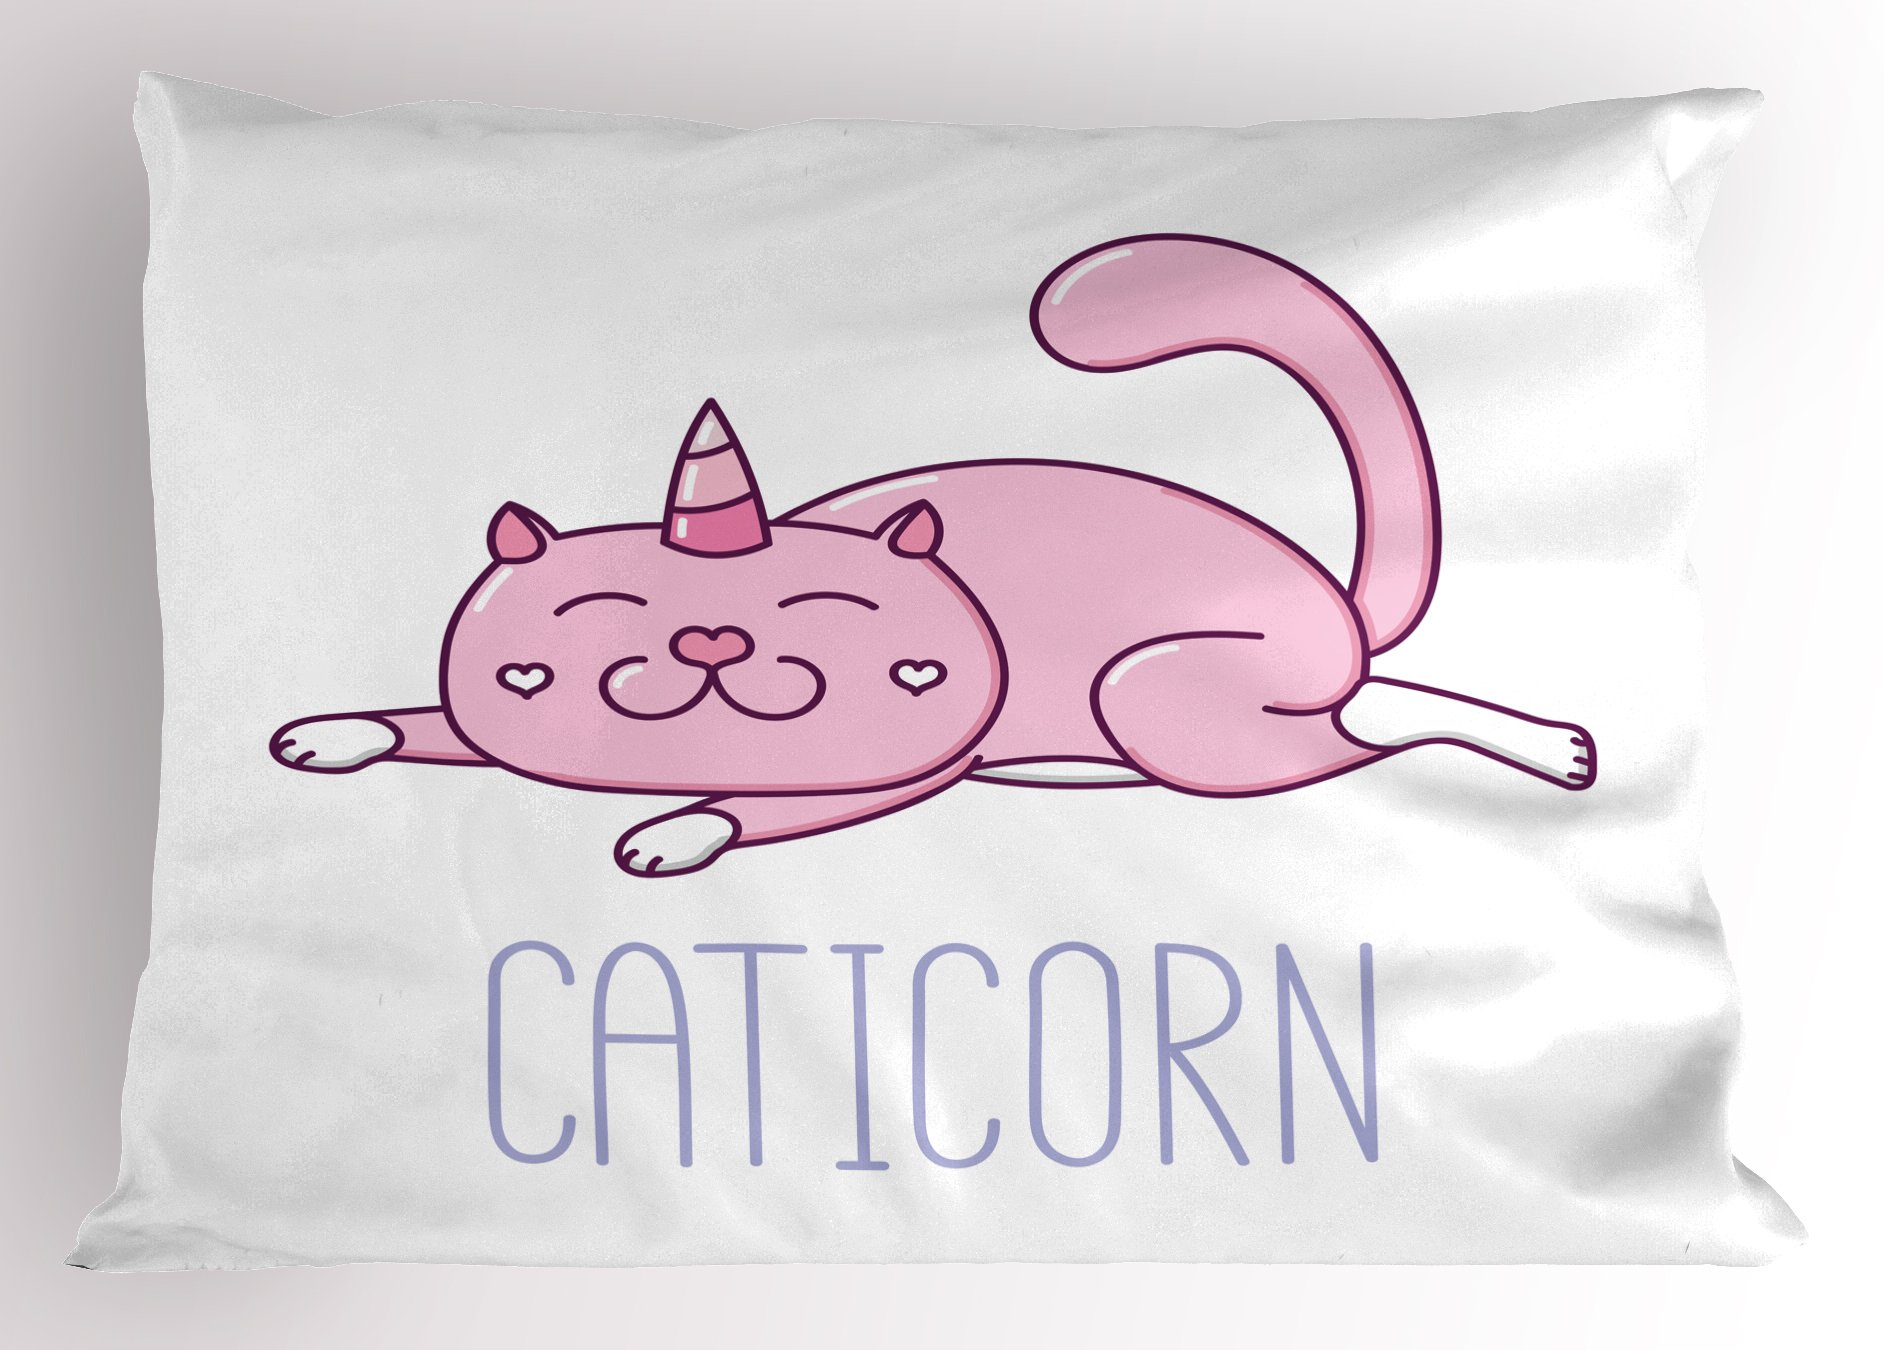 Ambesonne Unicorn Cat Pillow Sham, Pink Cat with a Horn and Funny Expression Lying Caticorn Cartoon Mascot, Decorative Standard Size Printed Pillowcase, 26 X 20 inches, Pink Lilac White